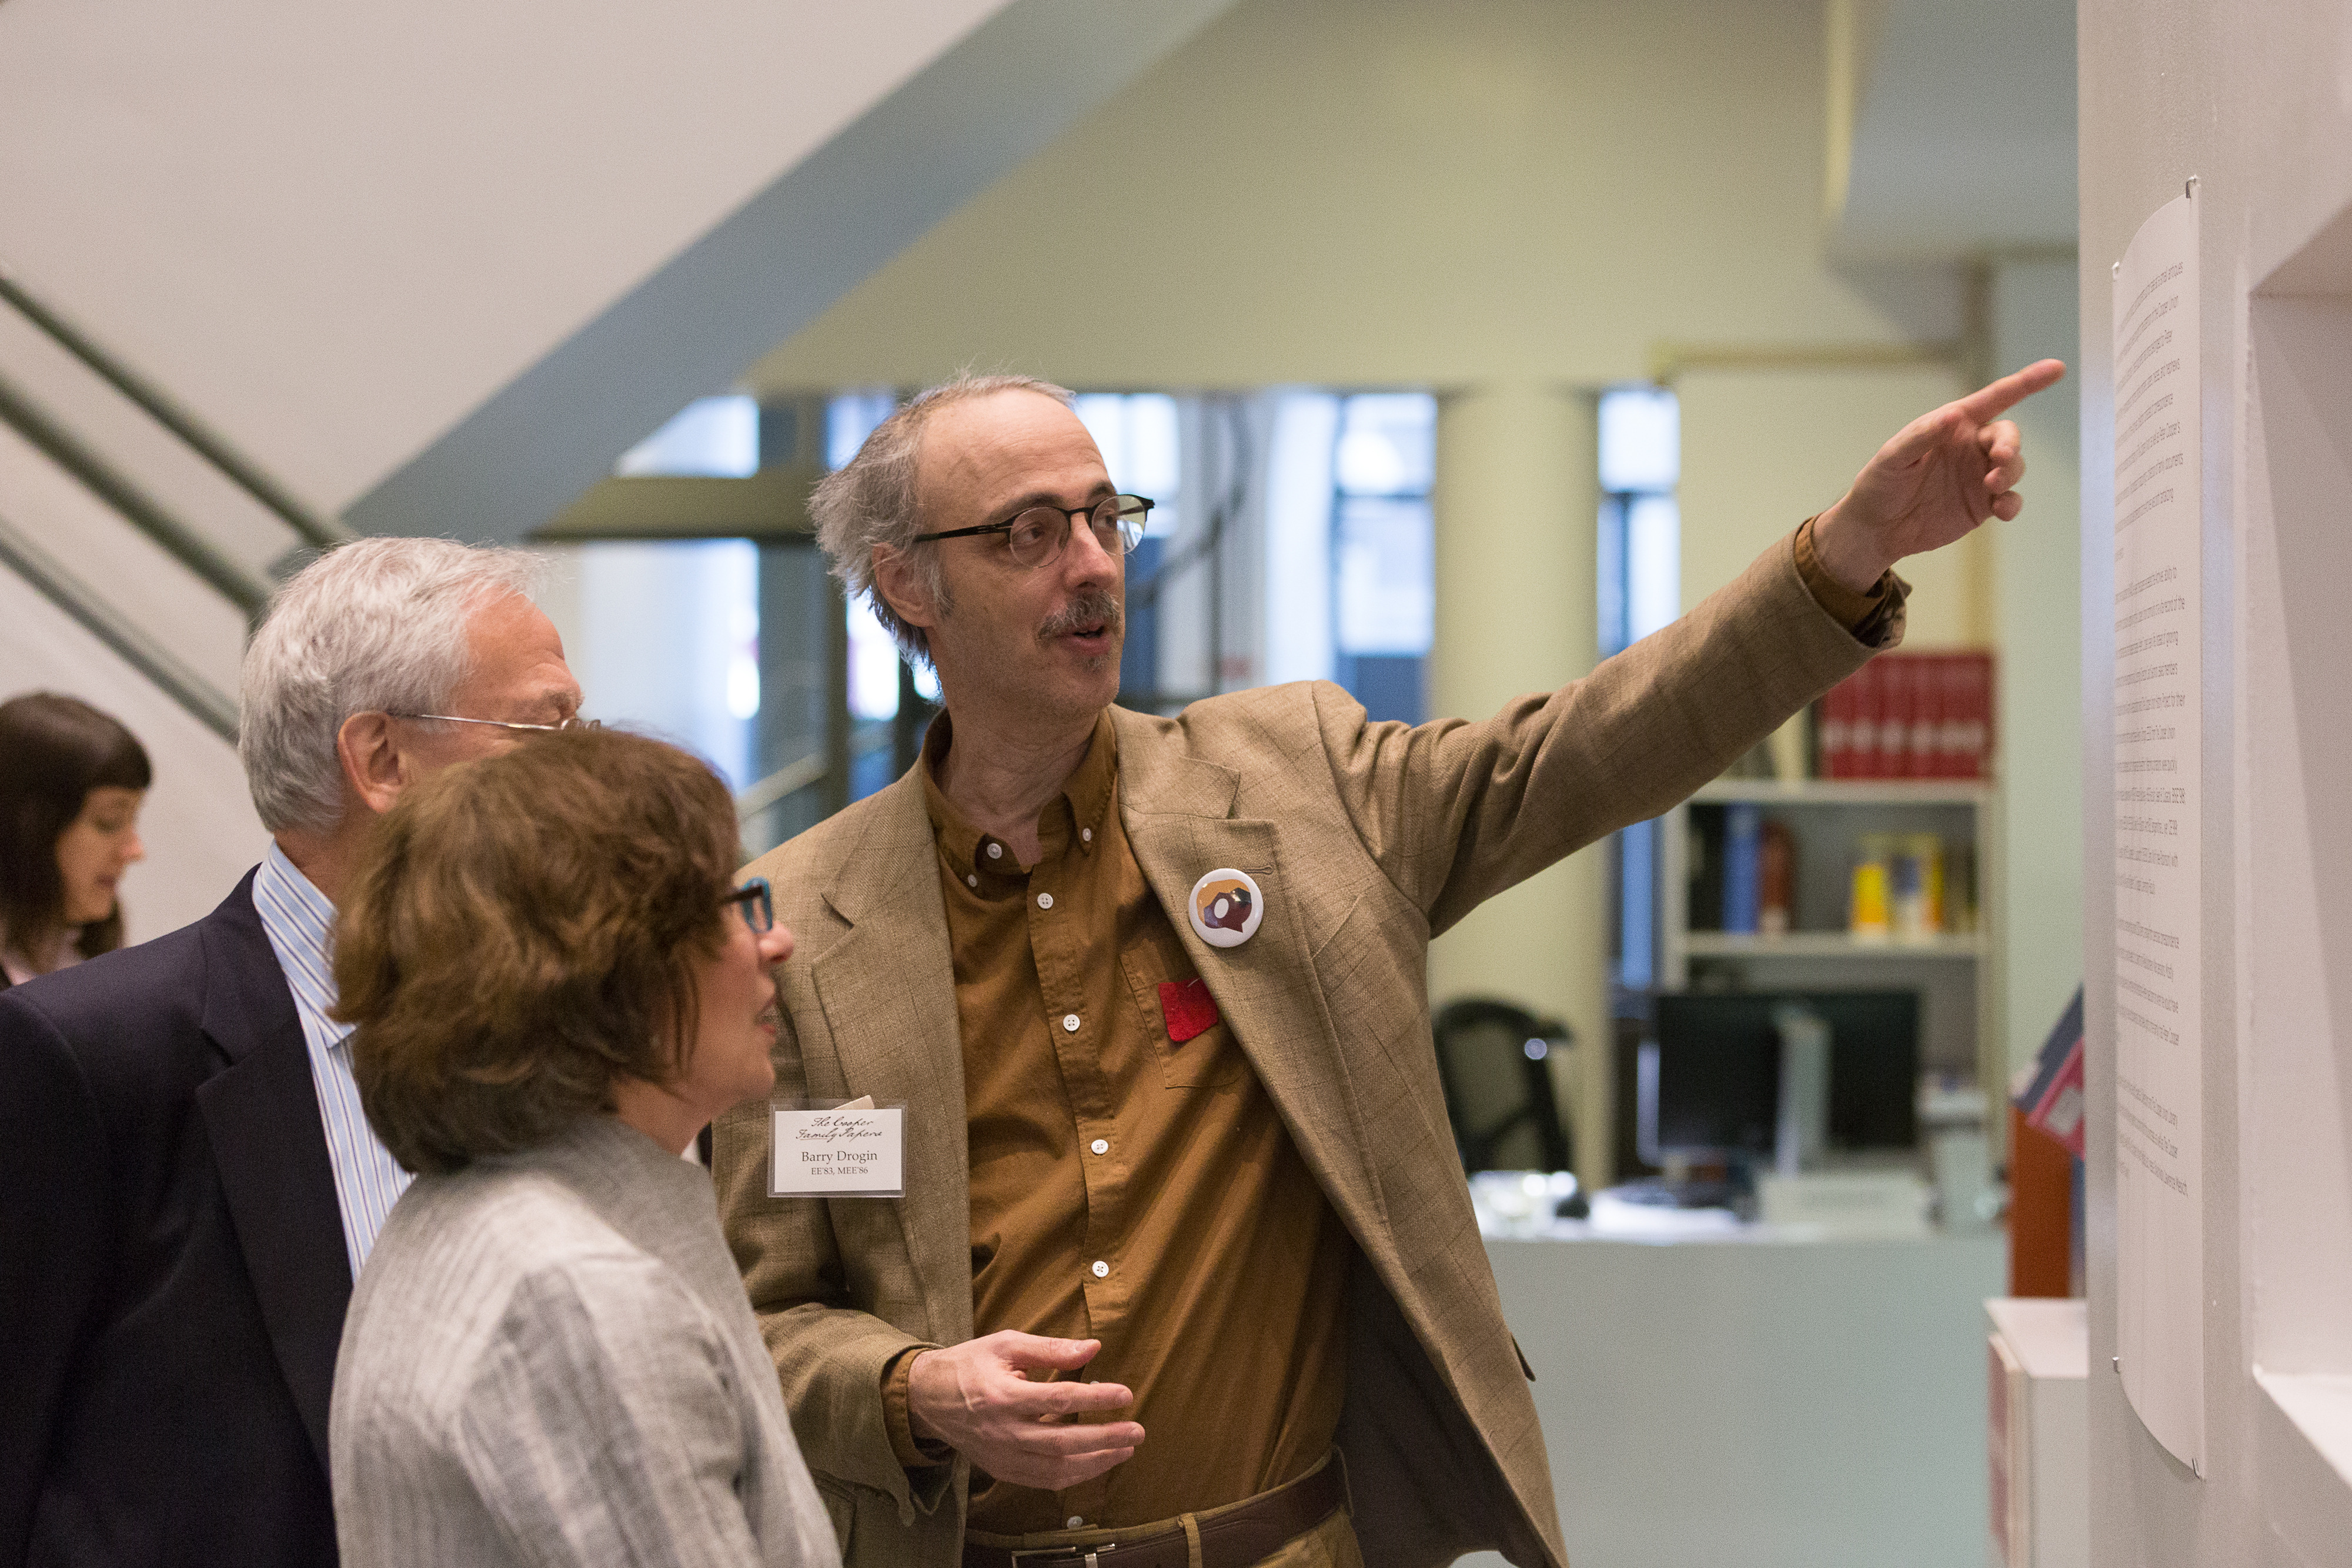 Reception for Cooper Family Papers exhibition